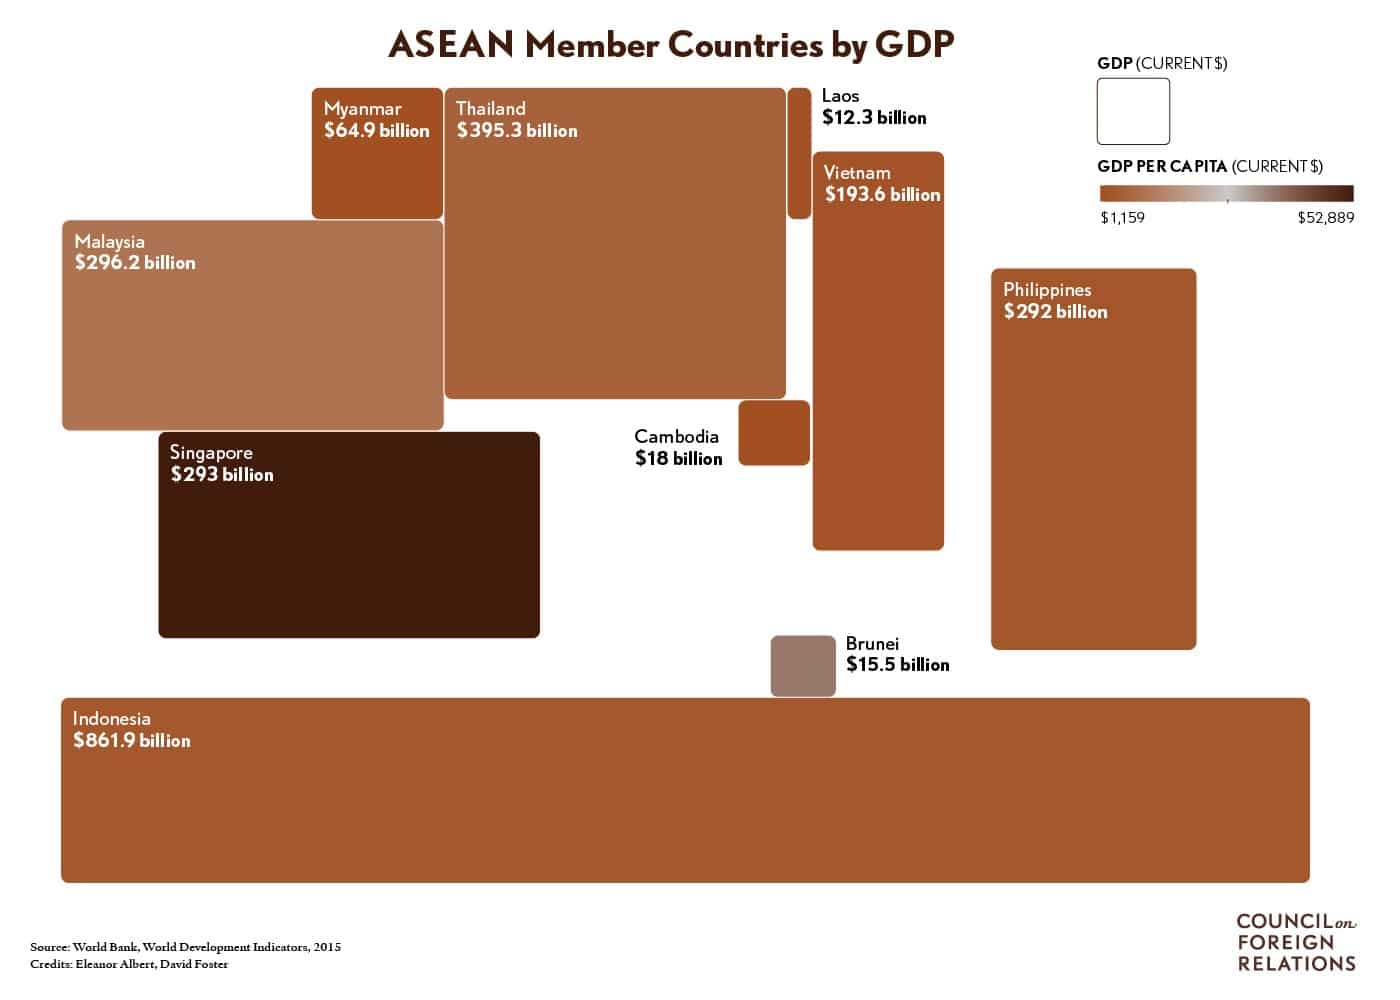 ASEAN Gross Domestic Product 2015